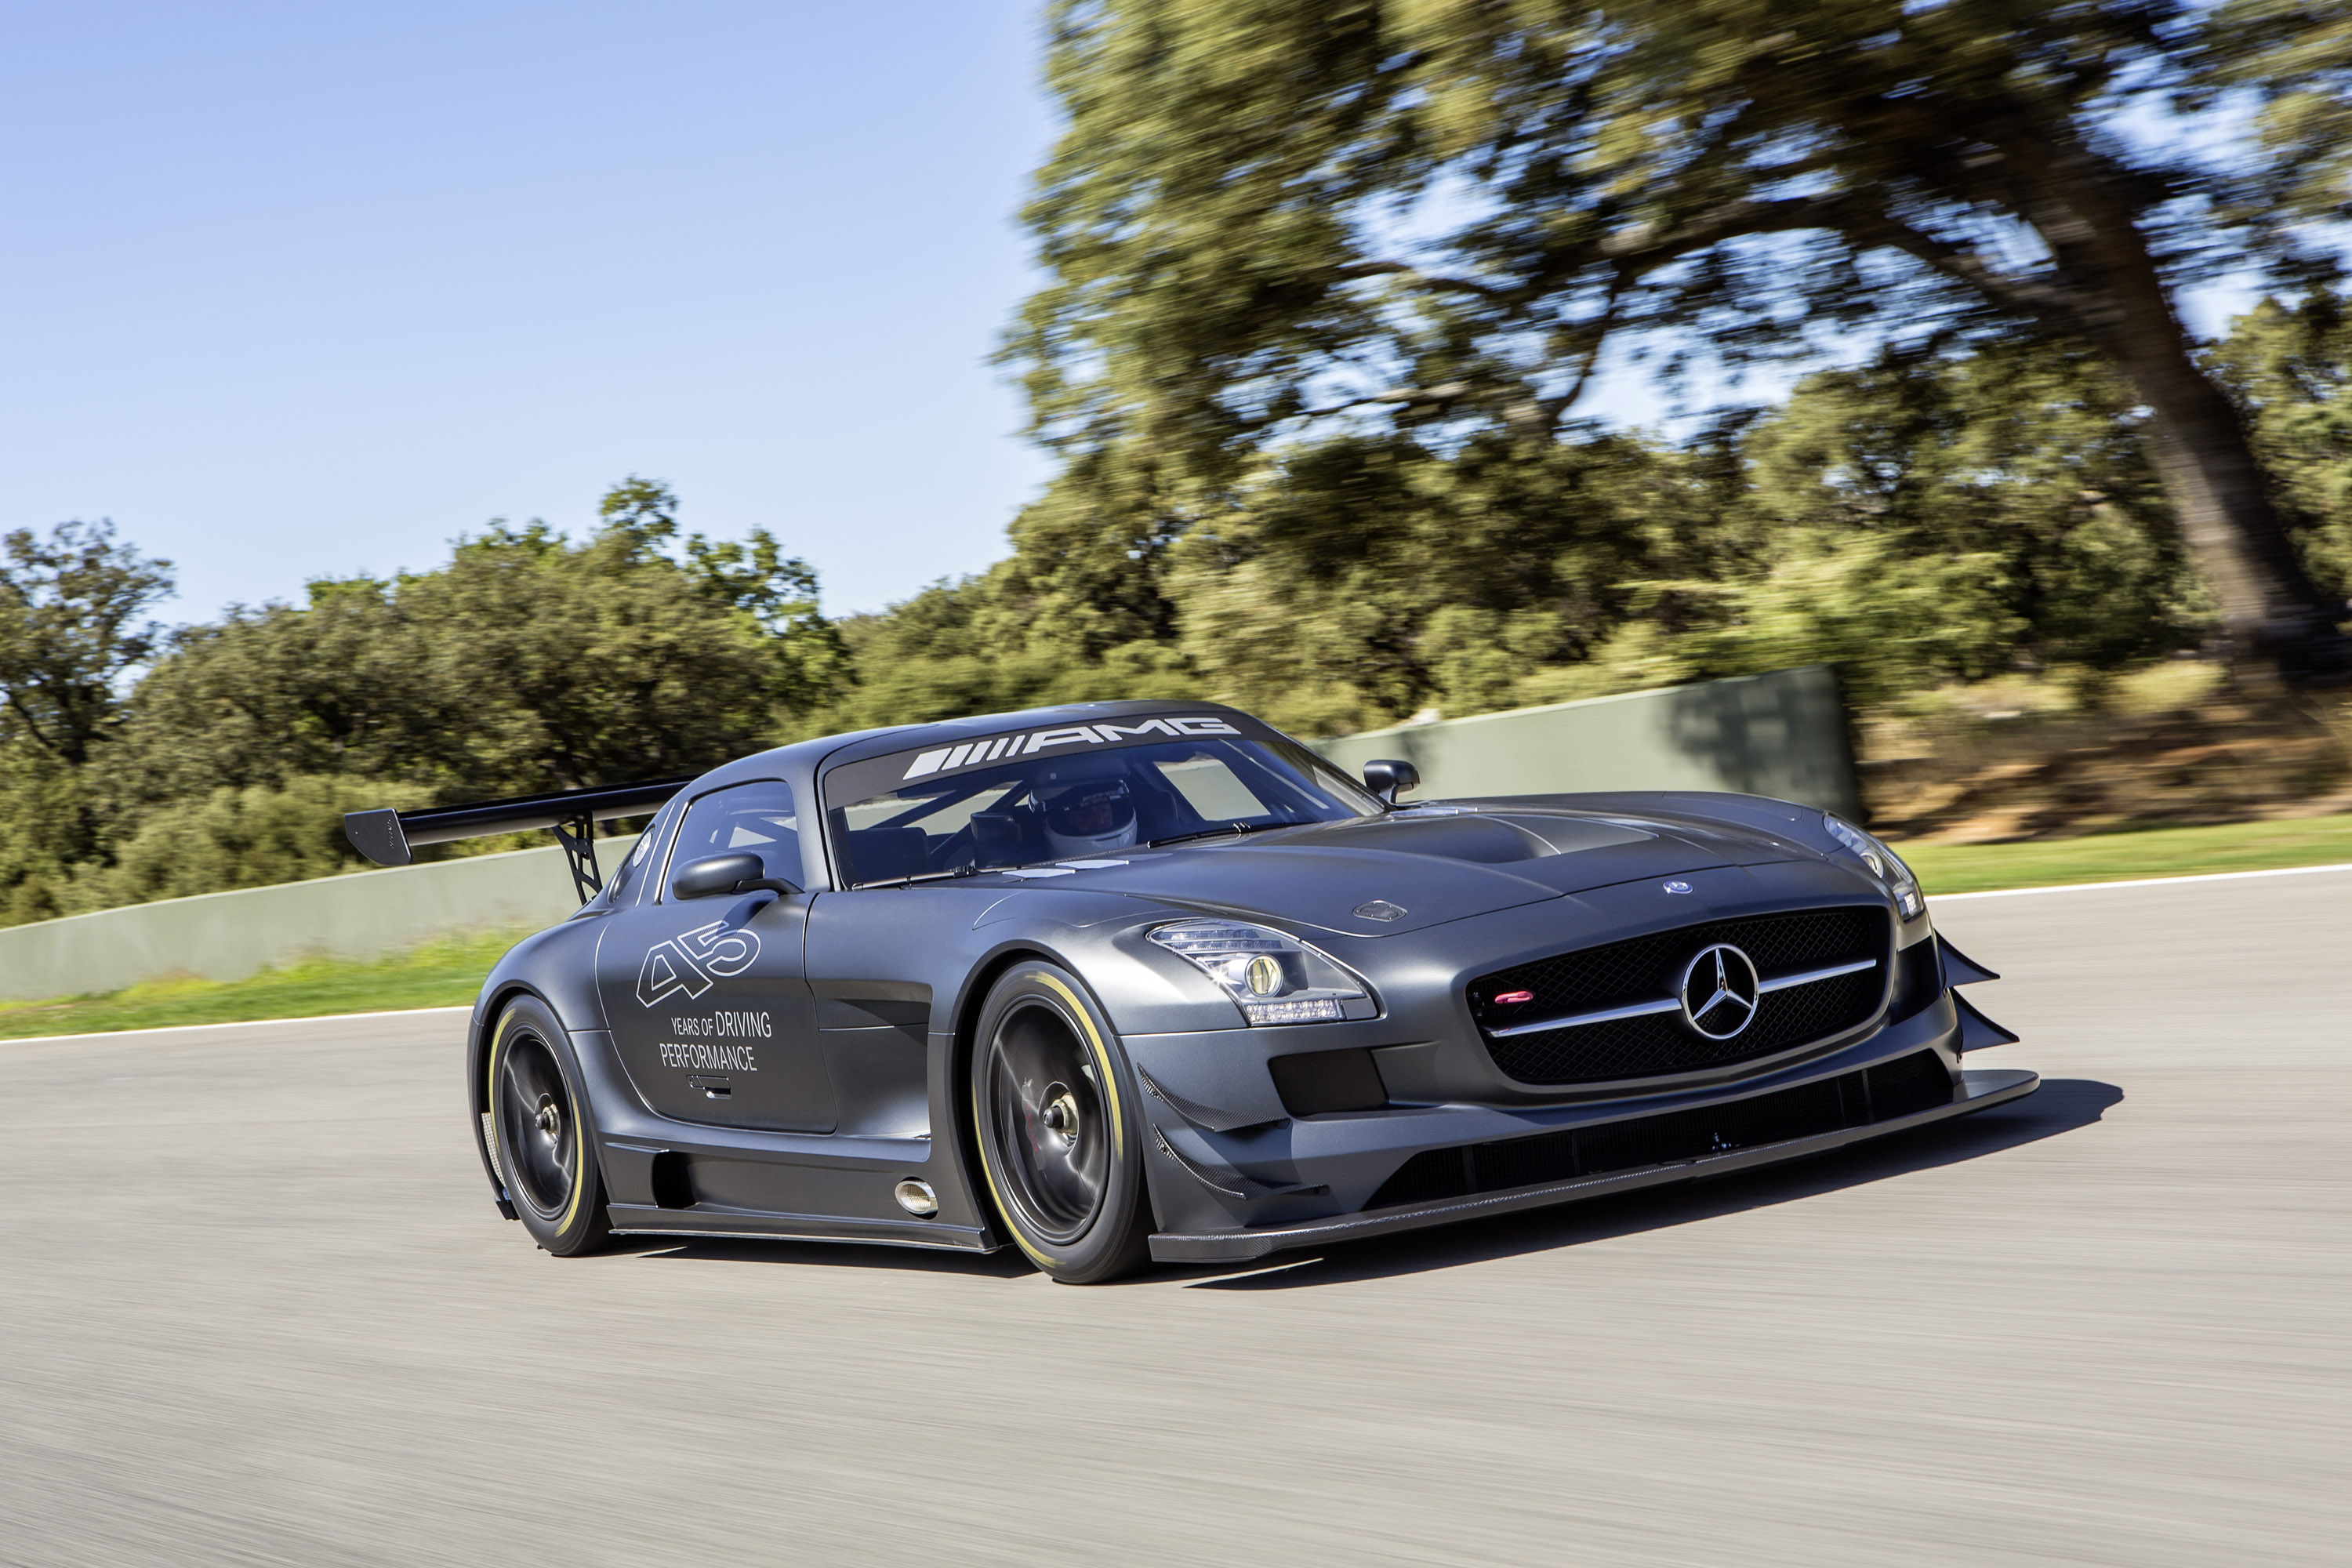 Mercedes benz sls amg gt3 45th anniversary price 446 250 for Price of mercedes benz amg